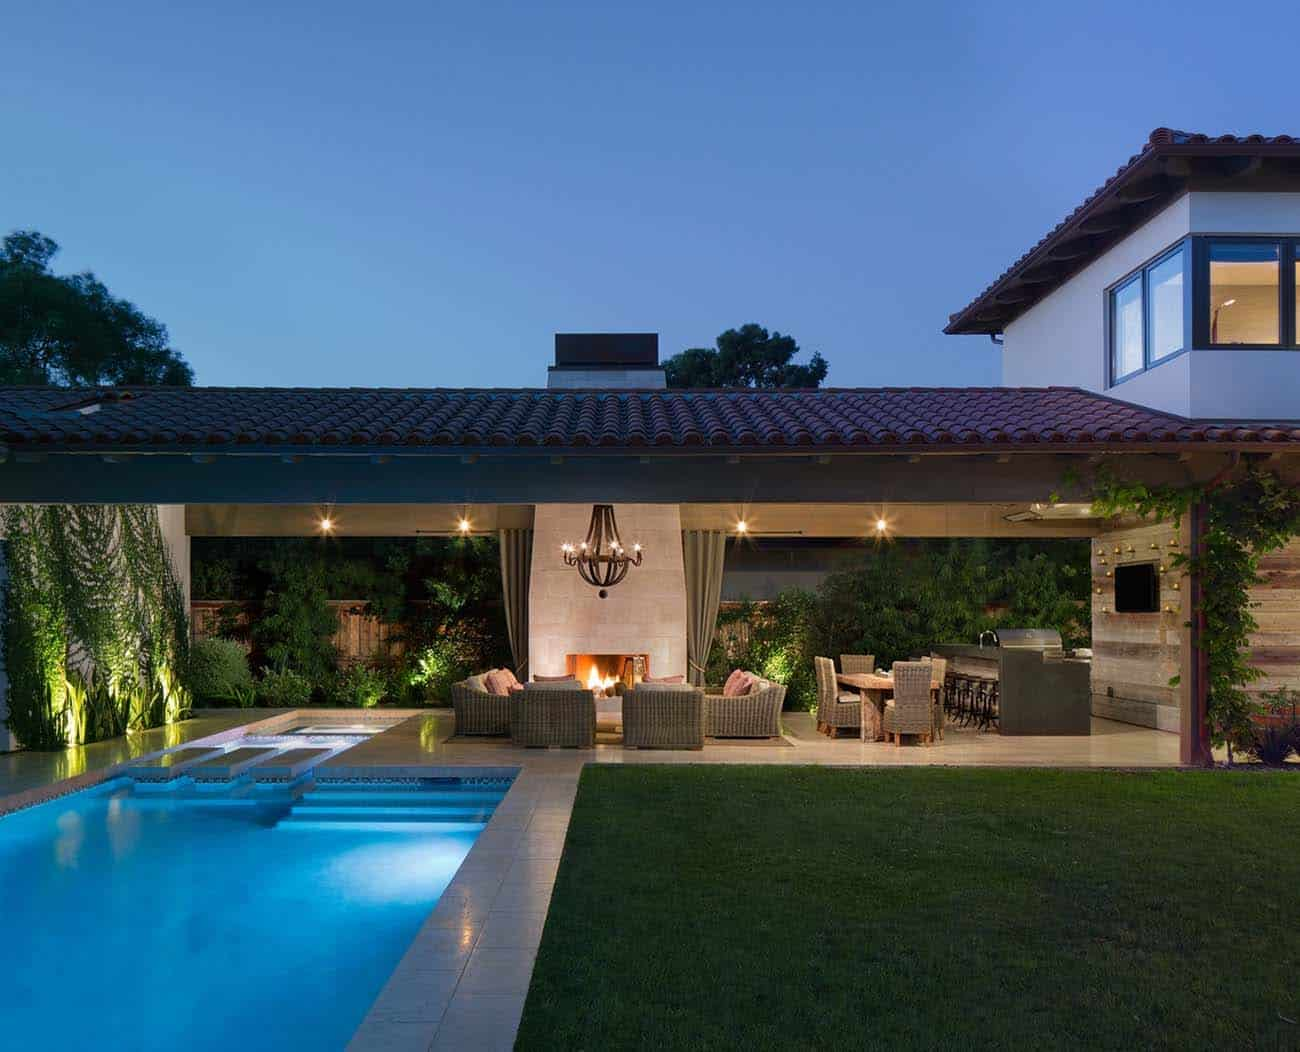 Contemporary-Mediterranean-Home-Christian Rice Architects-05-1 Kindesign